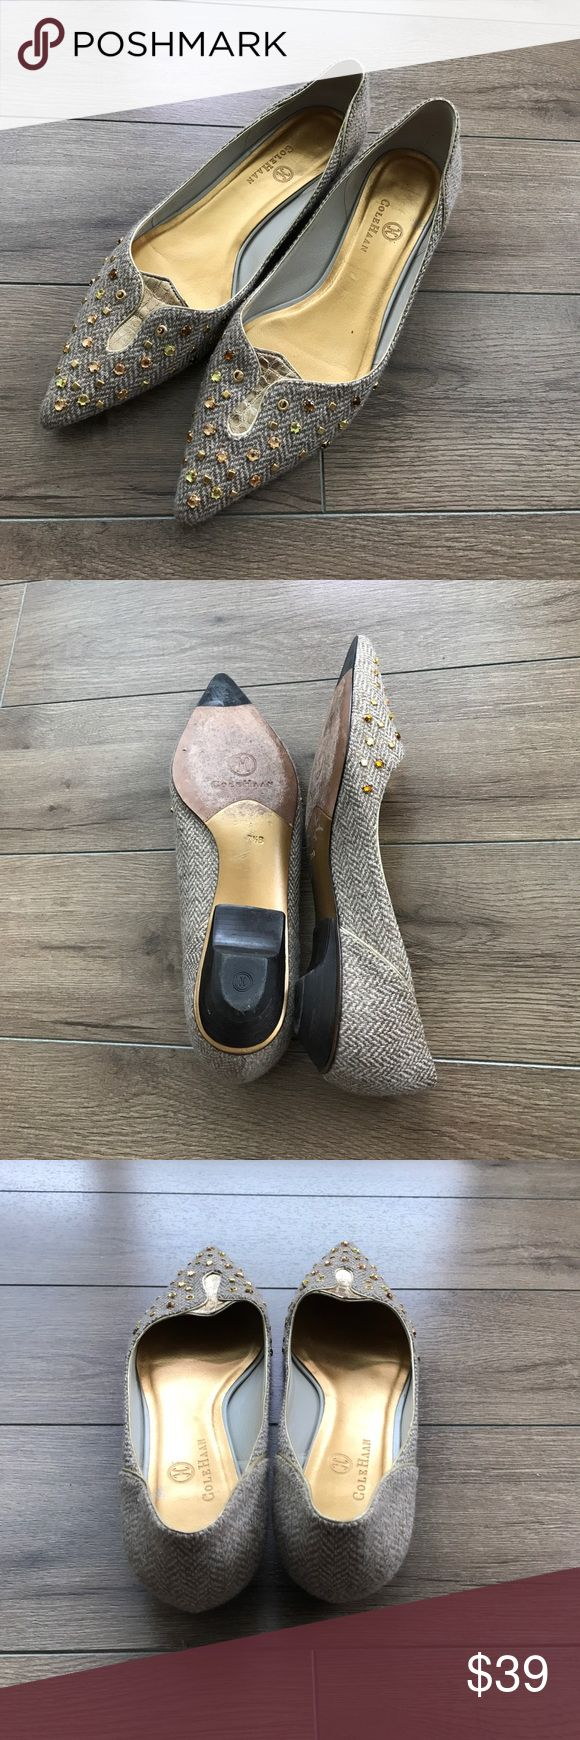 Cole Hann gold flats Cole Hann gold flats. Super stylish and comfy. Excellent condition. From non-smoke, non-pet home. Don't forget to add any two things in my closet and receive an extra 10% off! no trades Cole Haan Shoes Flats & Loafers